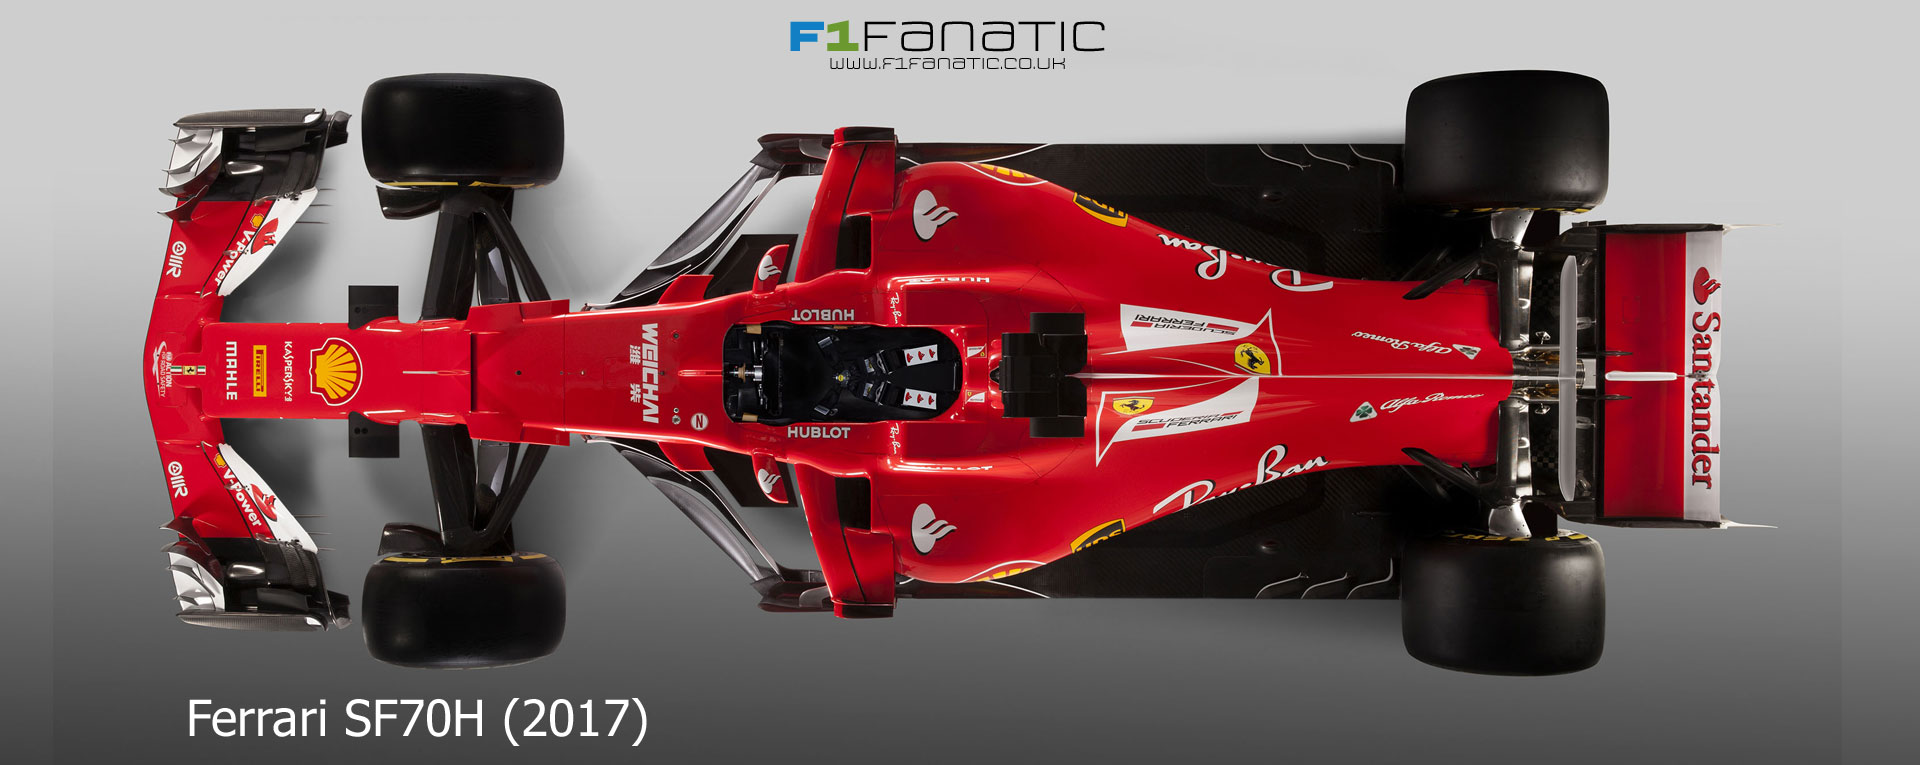 Ferrari S Top Down View Of Its 2017 Car Gives An Excellent Basis For Comparison With Last Year Model The Diameter Front Wheels Is Unchanged